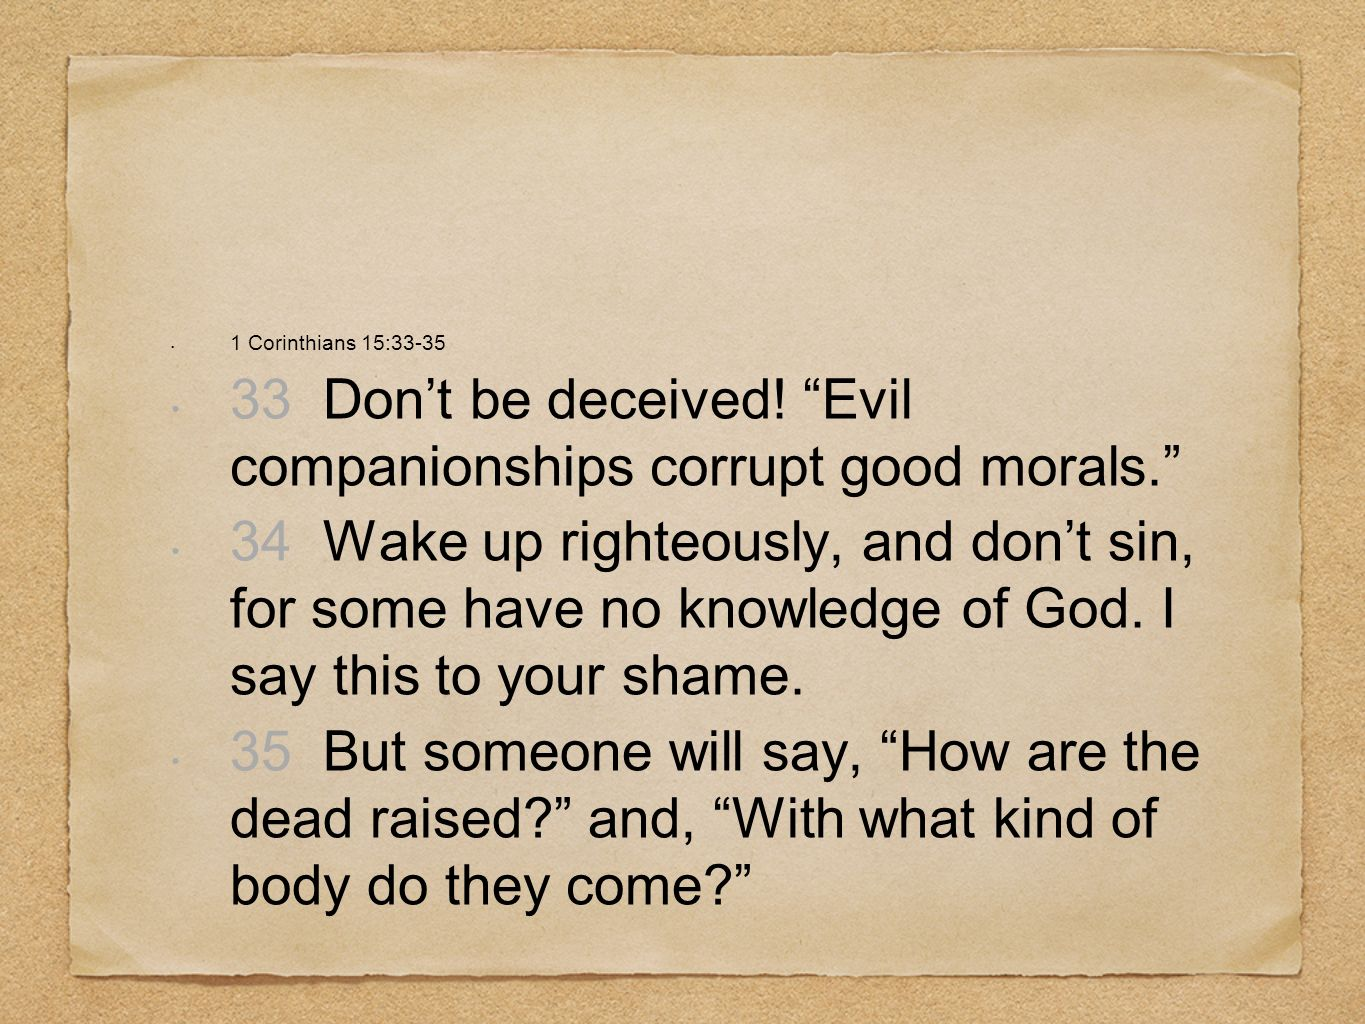 33 Don't be deceived! Evil companionships corrupt good morals.